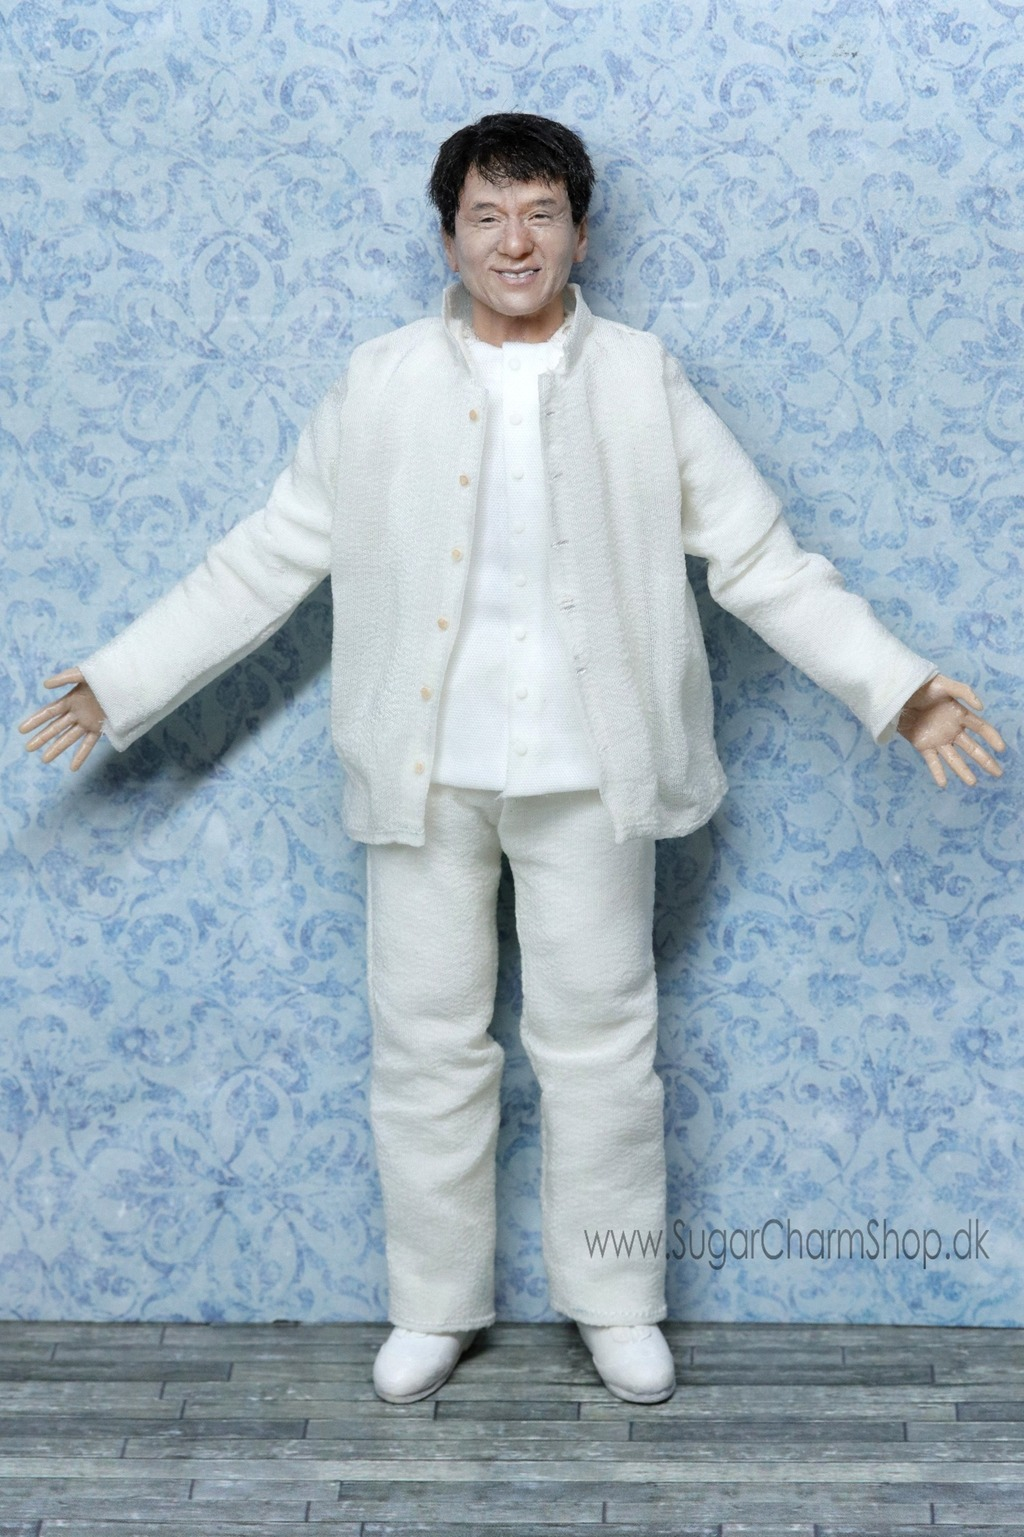 Jackie Chan inspired miniature doll